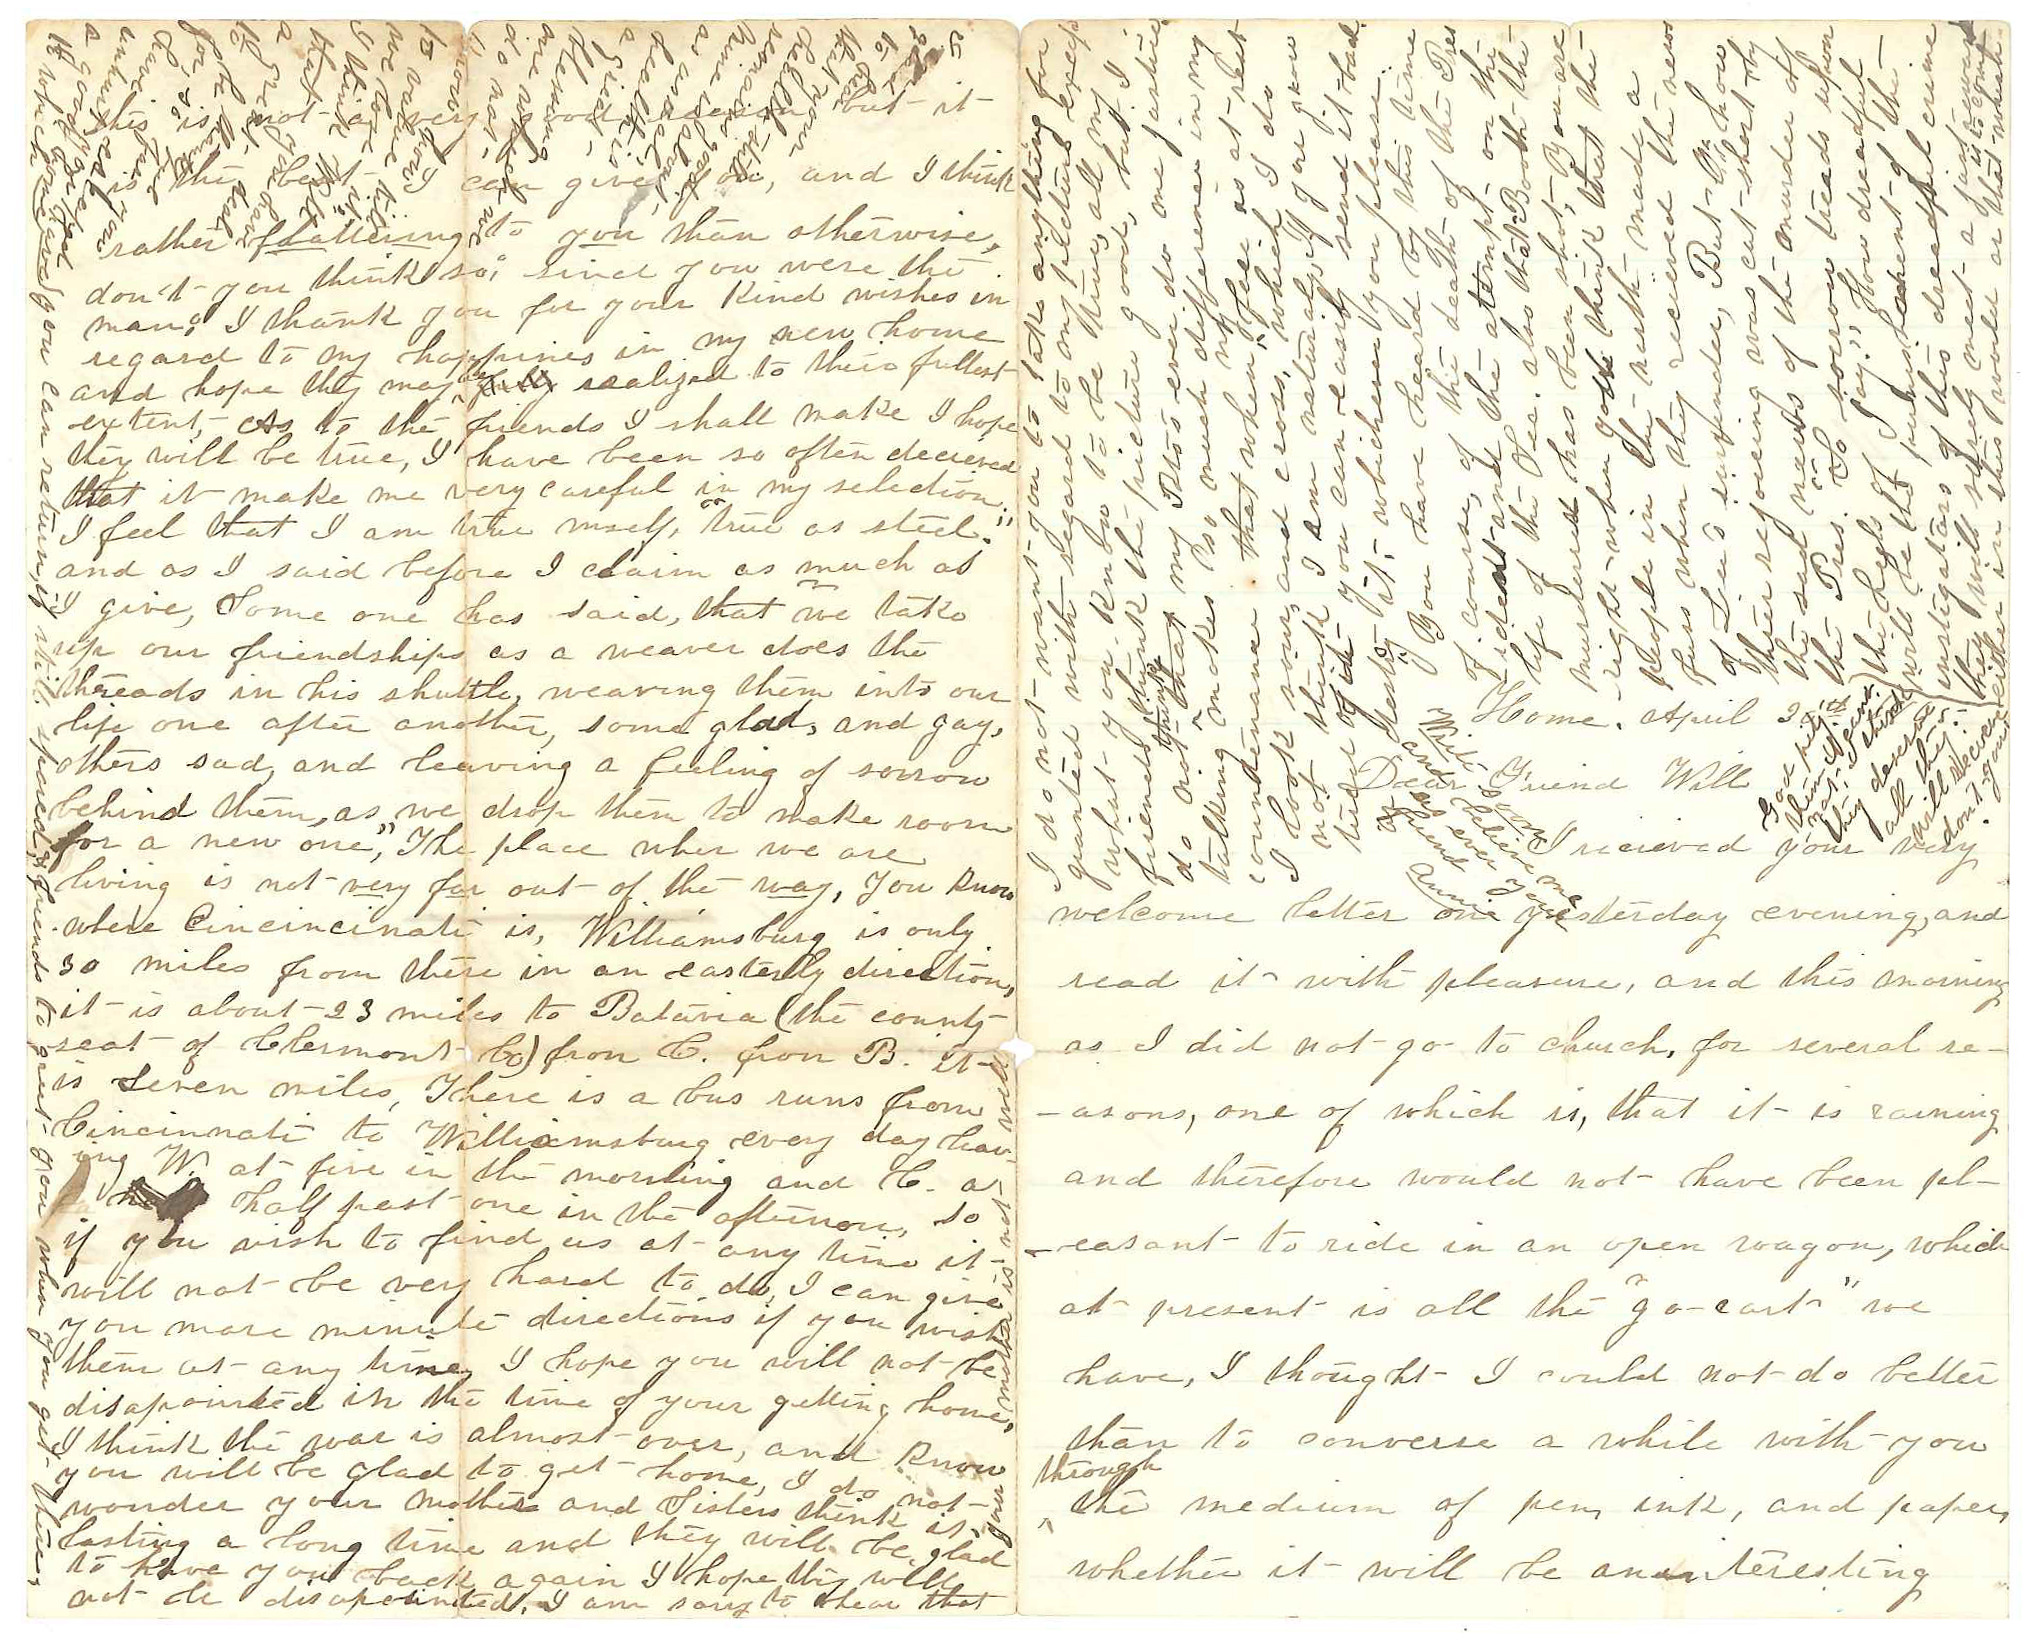 Letter from Annie to Will, April 30, 1865